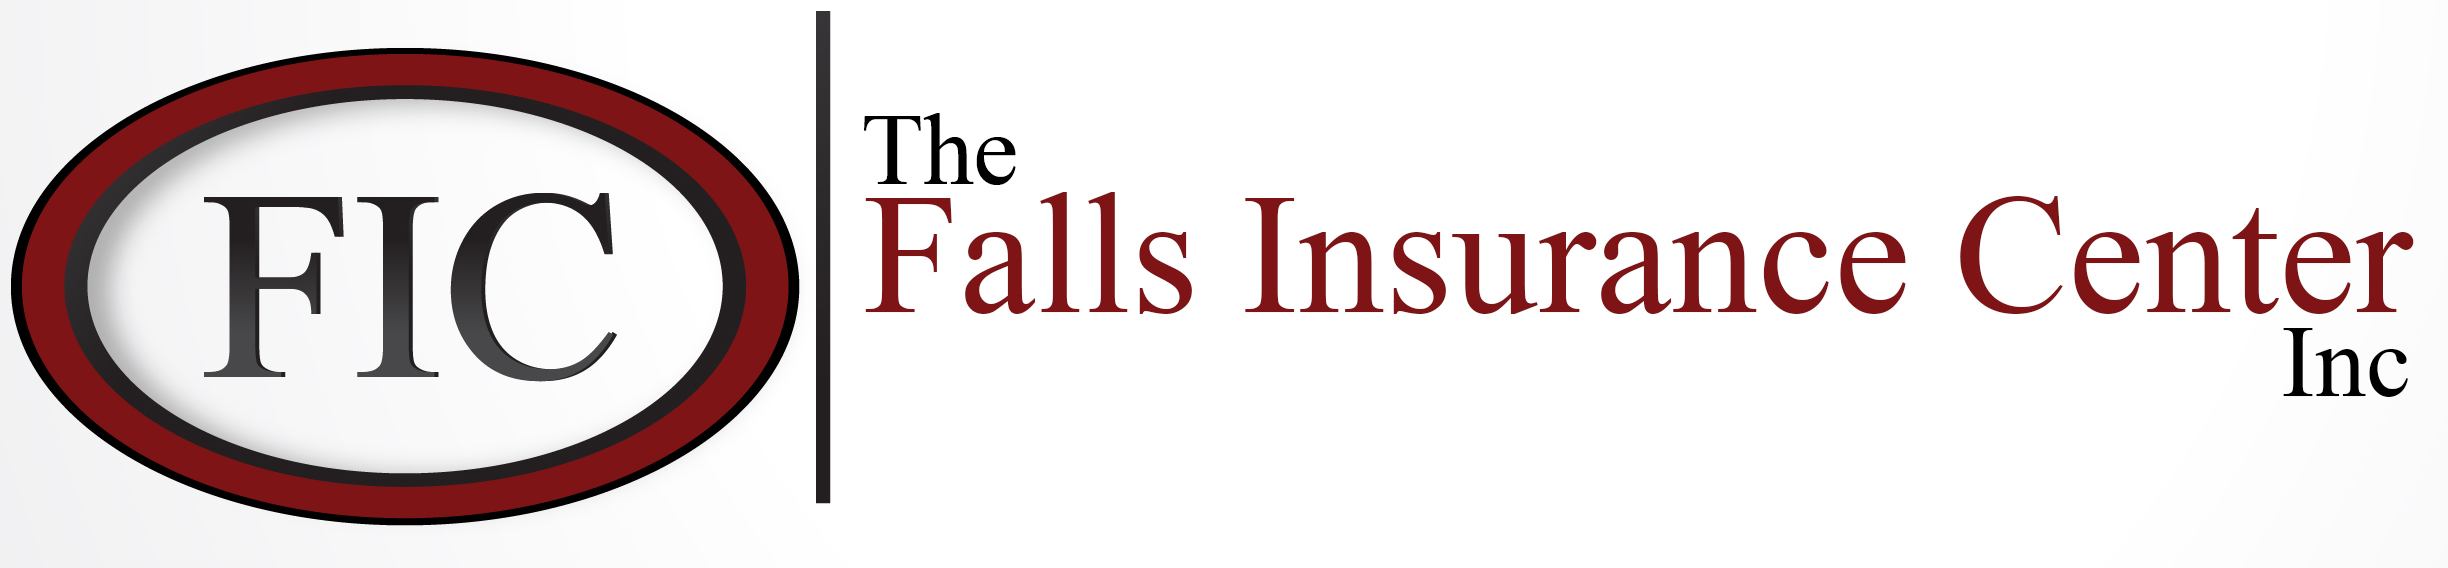 The Falls Insurance Center, Inc. logo